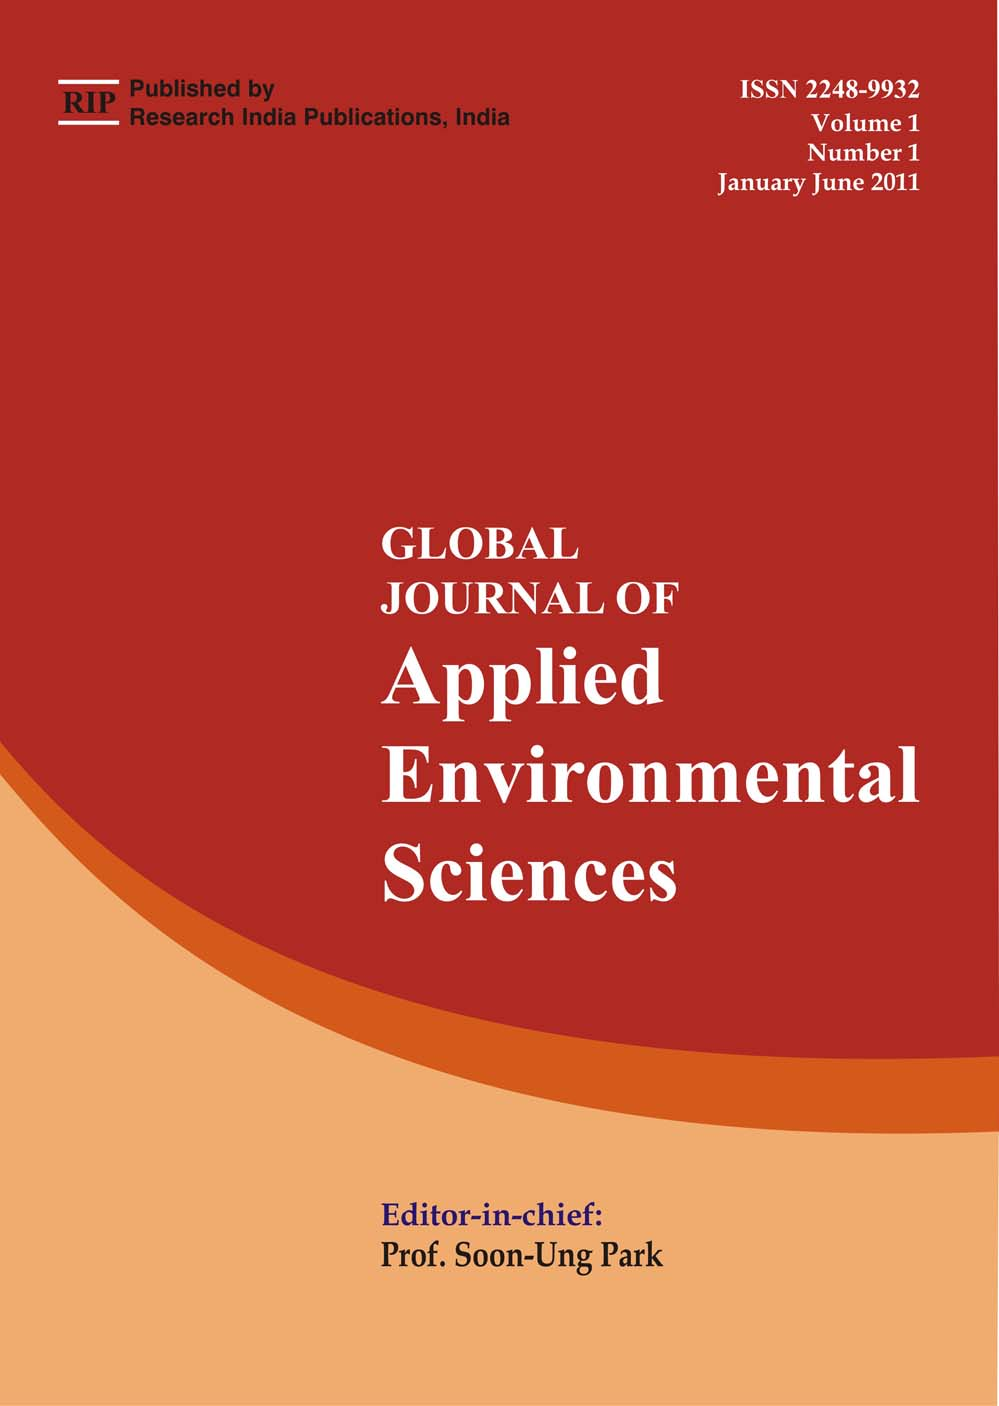 gjaes global journal  applied environmental sciences computer science journals journals